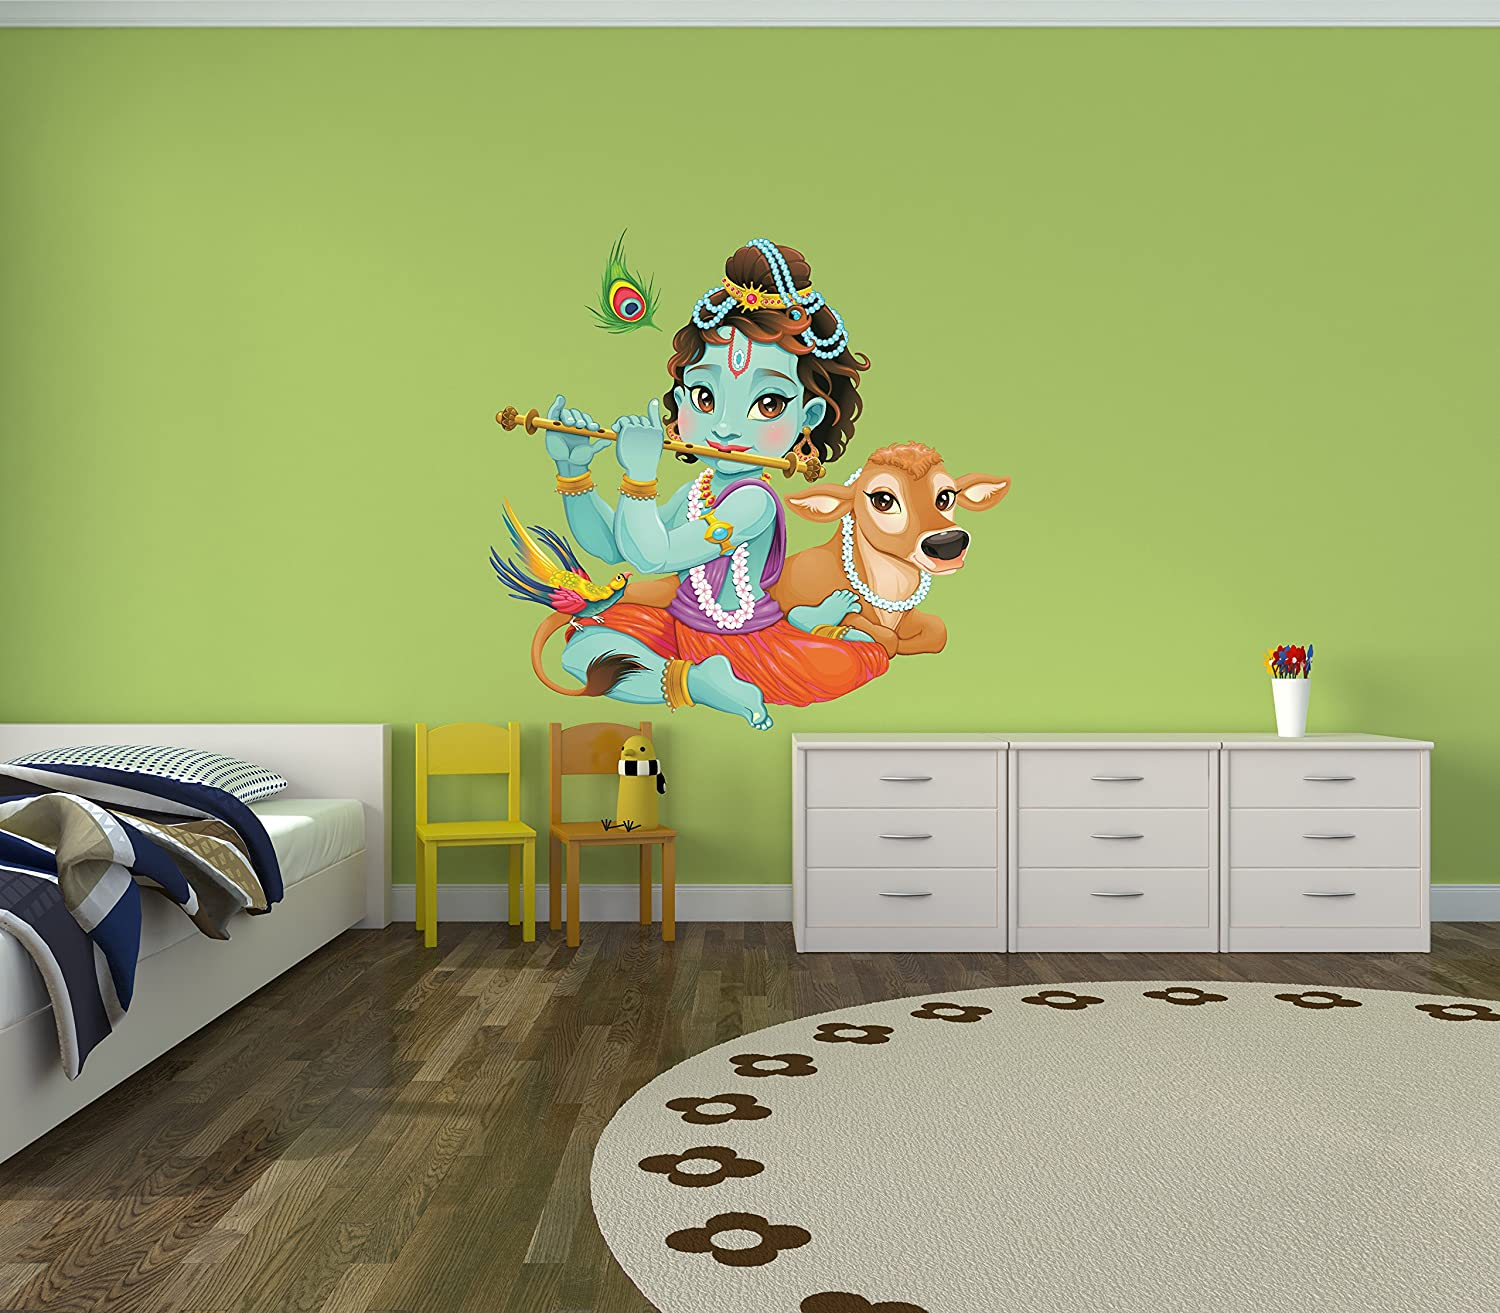 amazon com child krishna playing flute with baby cow wall decal amazon com child krishna playing flute with baby cow wall decal baby krishna playing flute indian deity wall decoration wdset10077 home kitchen